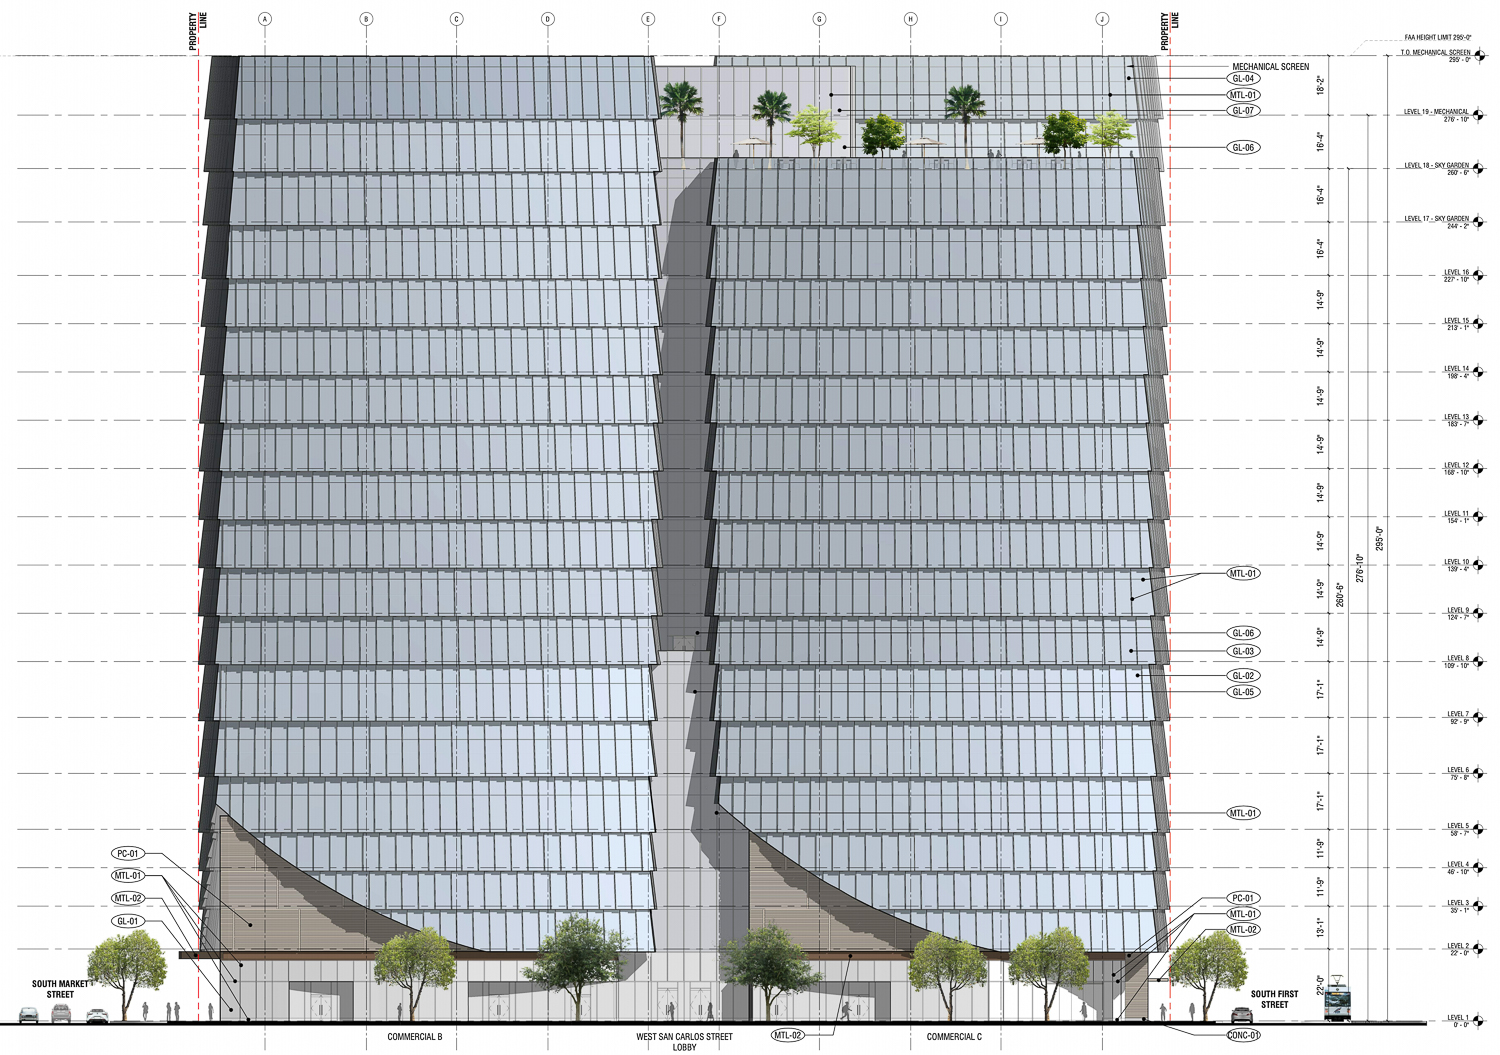 282 South Market Street vertical elevation, design by Arquitectonica